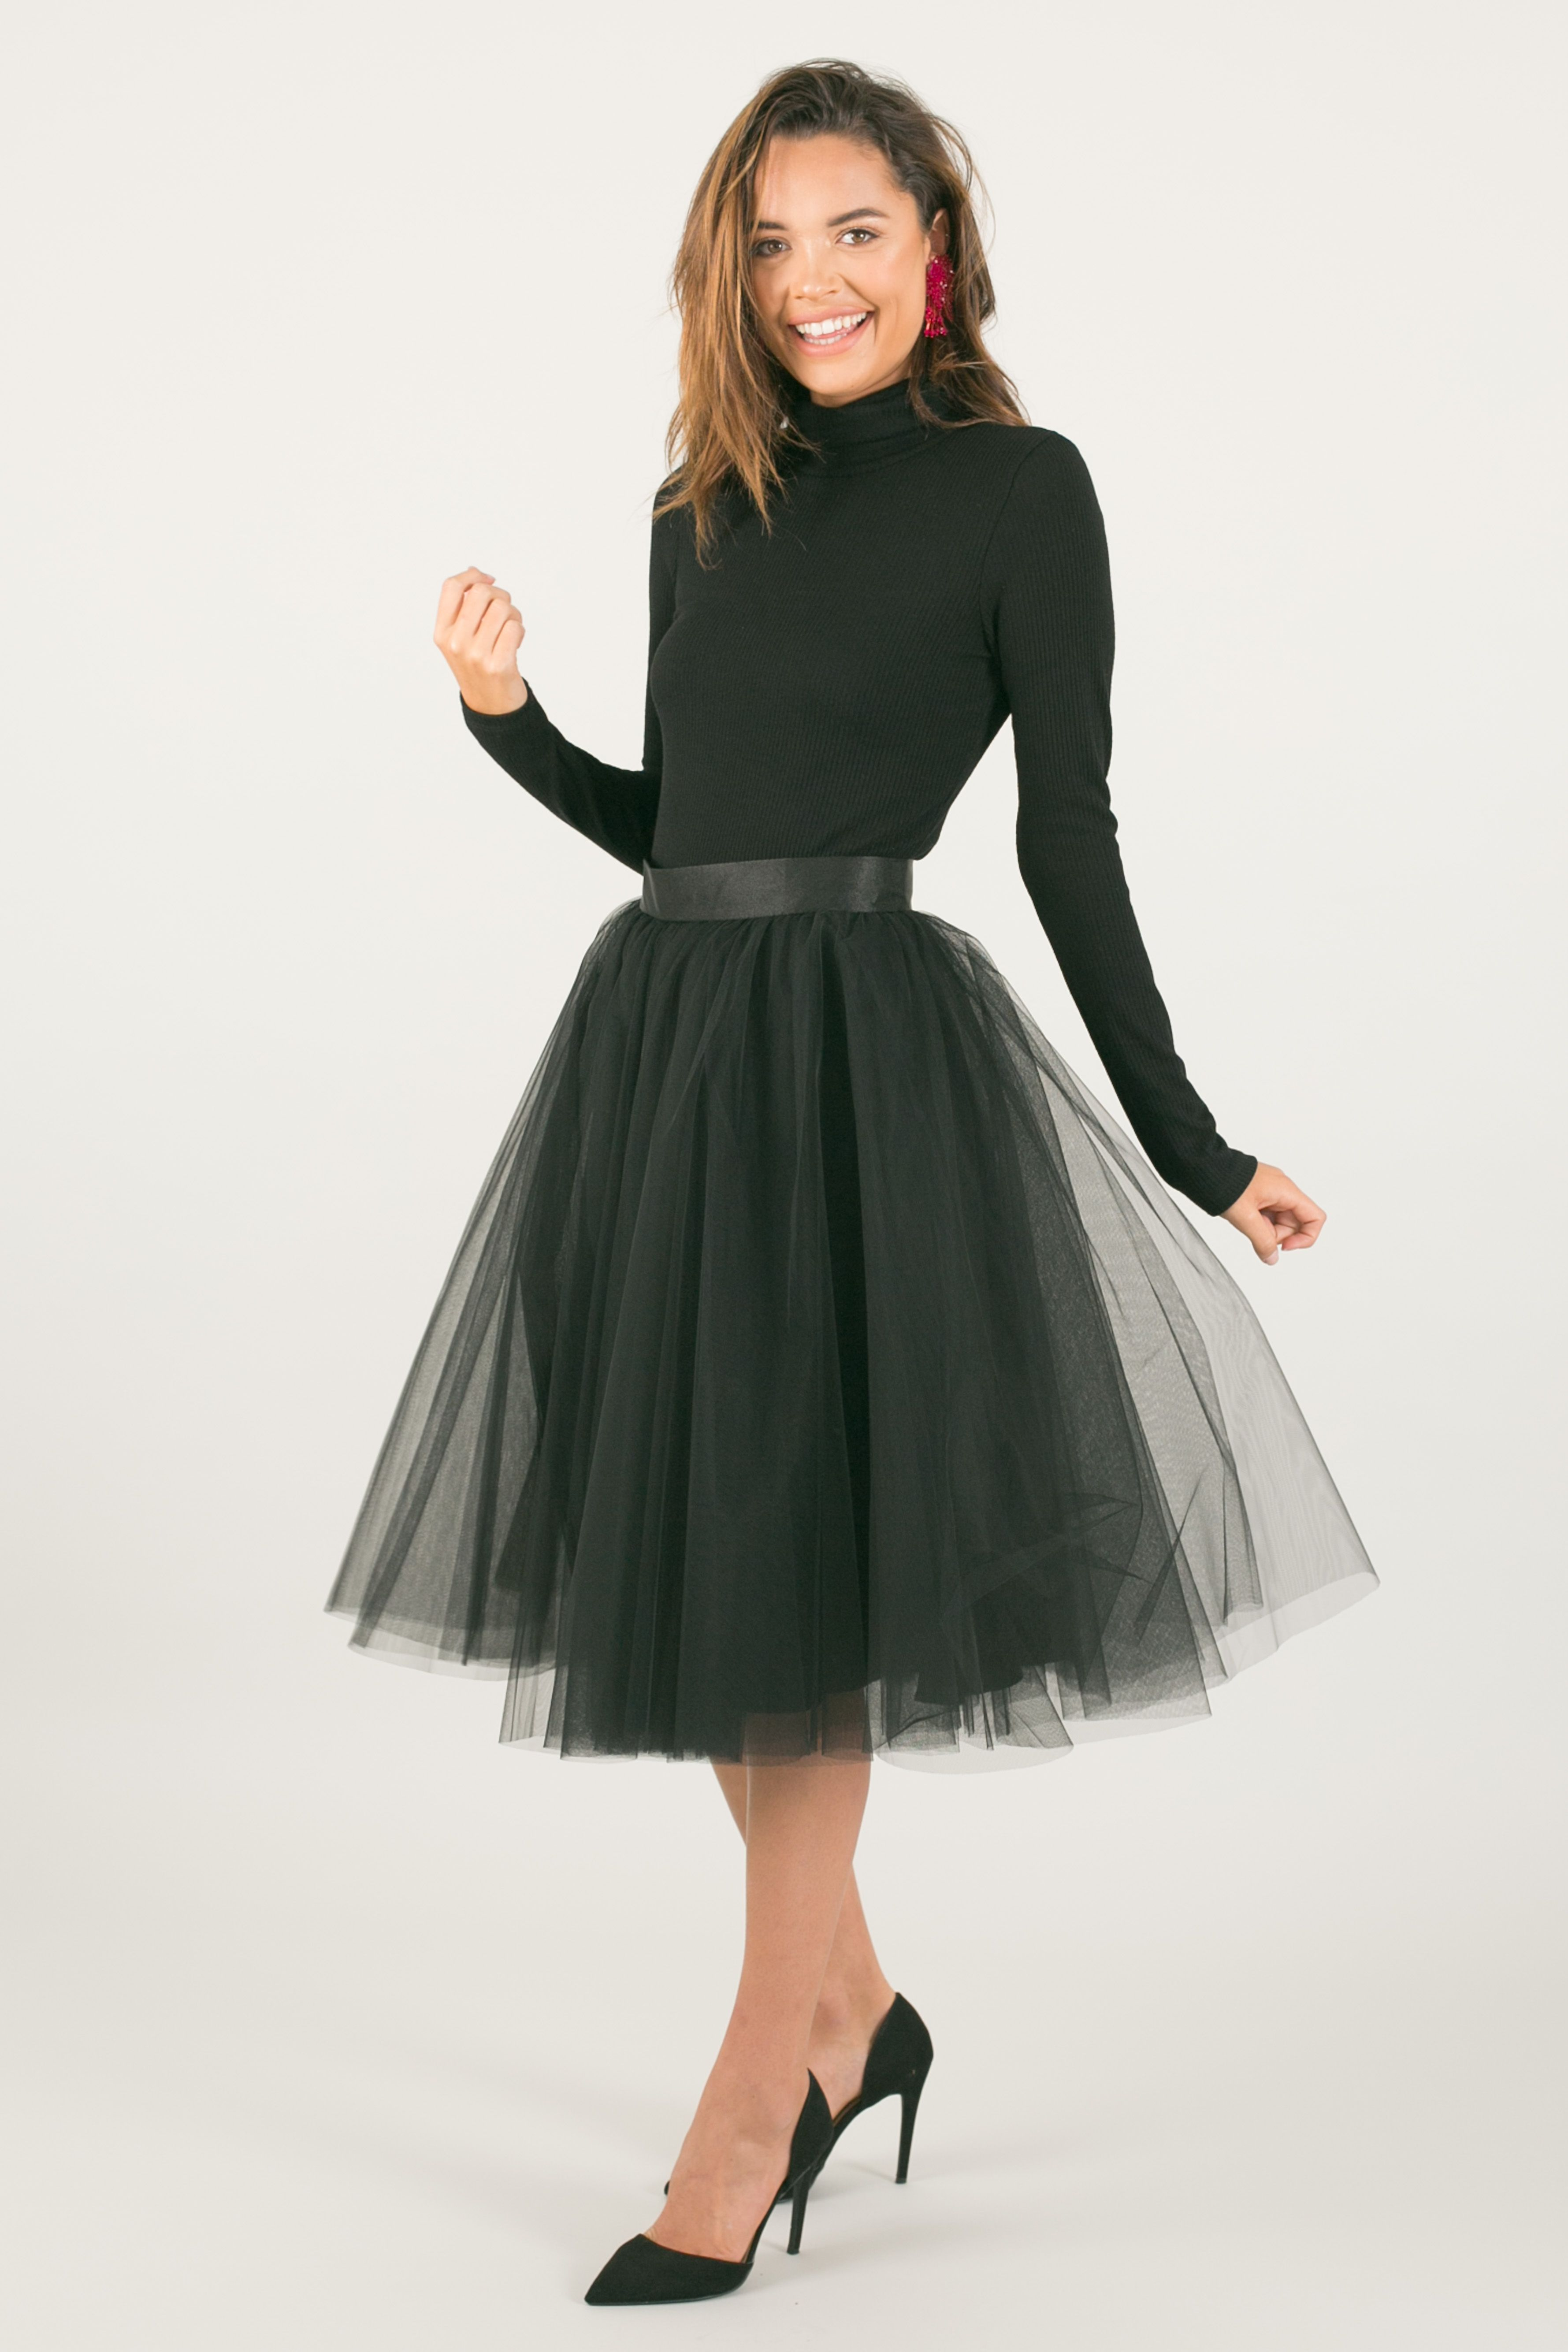 8101bf996 Space 46 tulle skirt, black skirt, black midi skirt, black midi tulle skirt,  tutu skirt, ballerina skirt, fall outfit ideas, holiday outfit ideas, ...